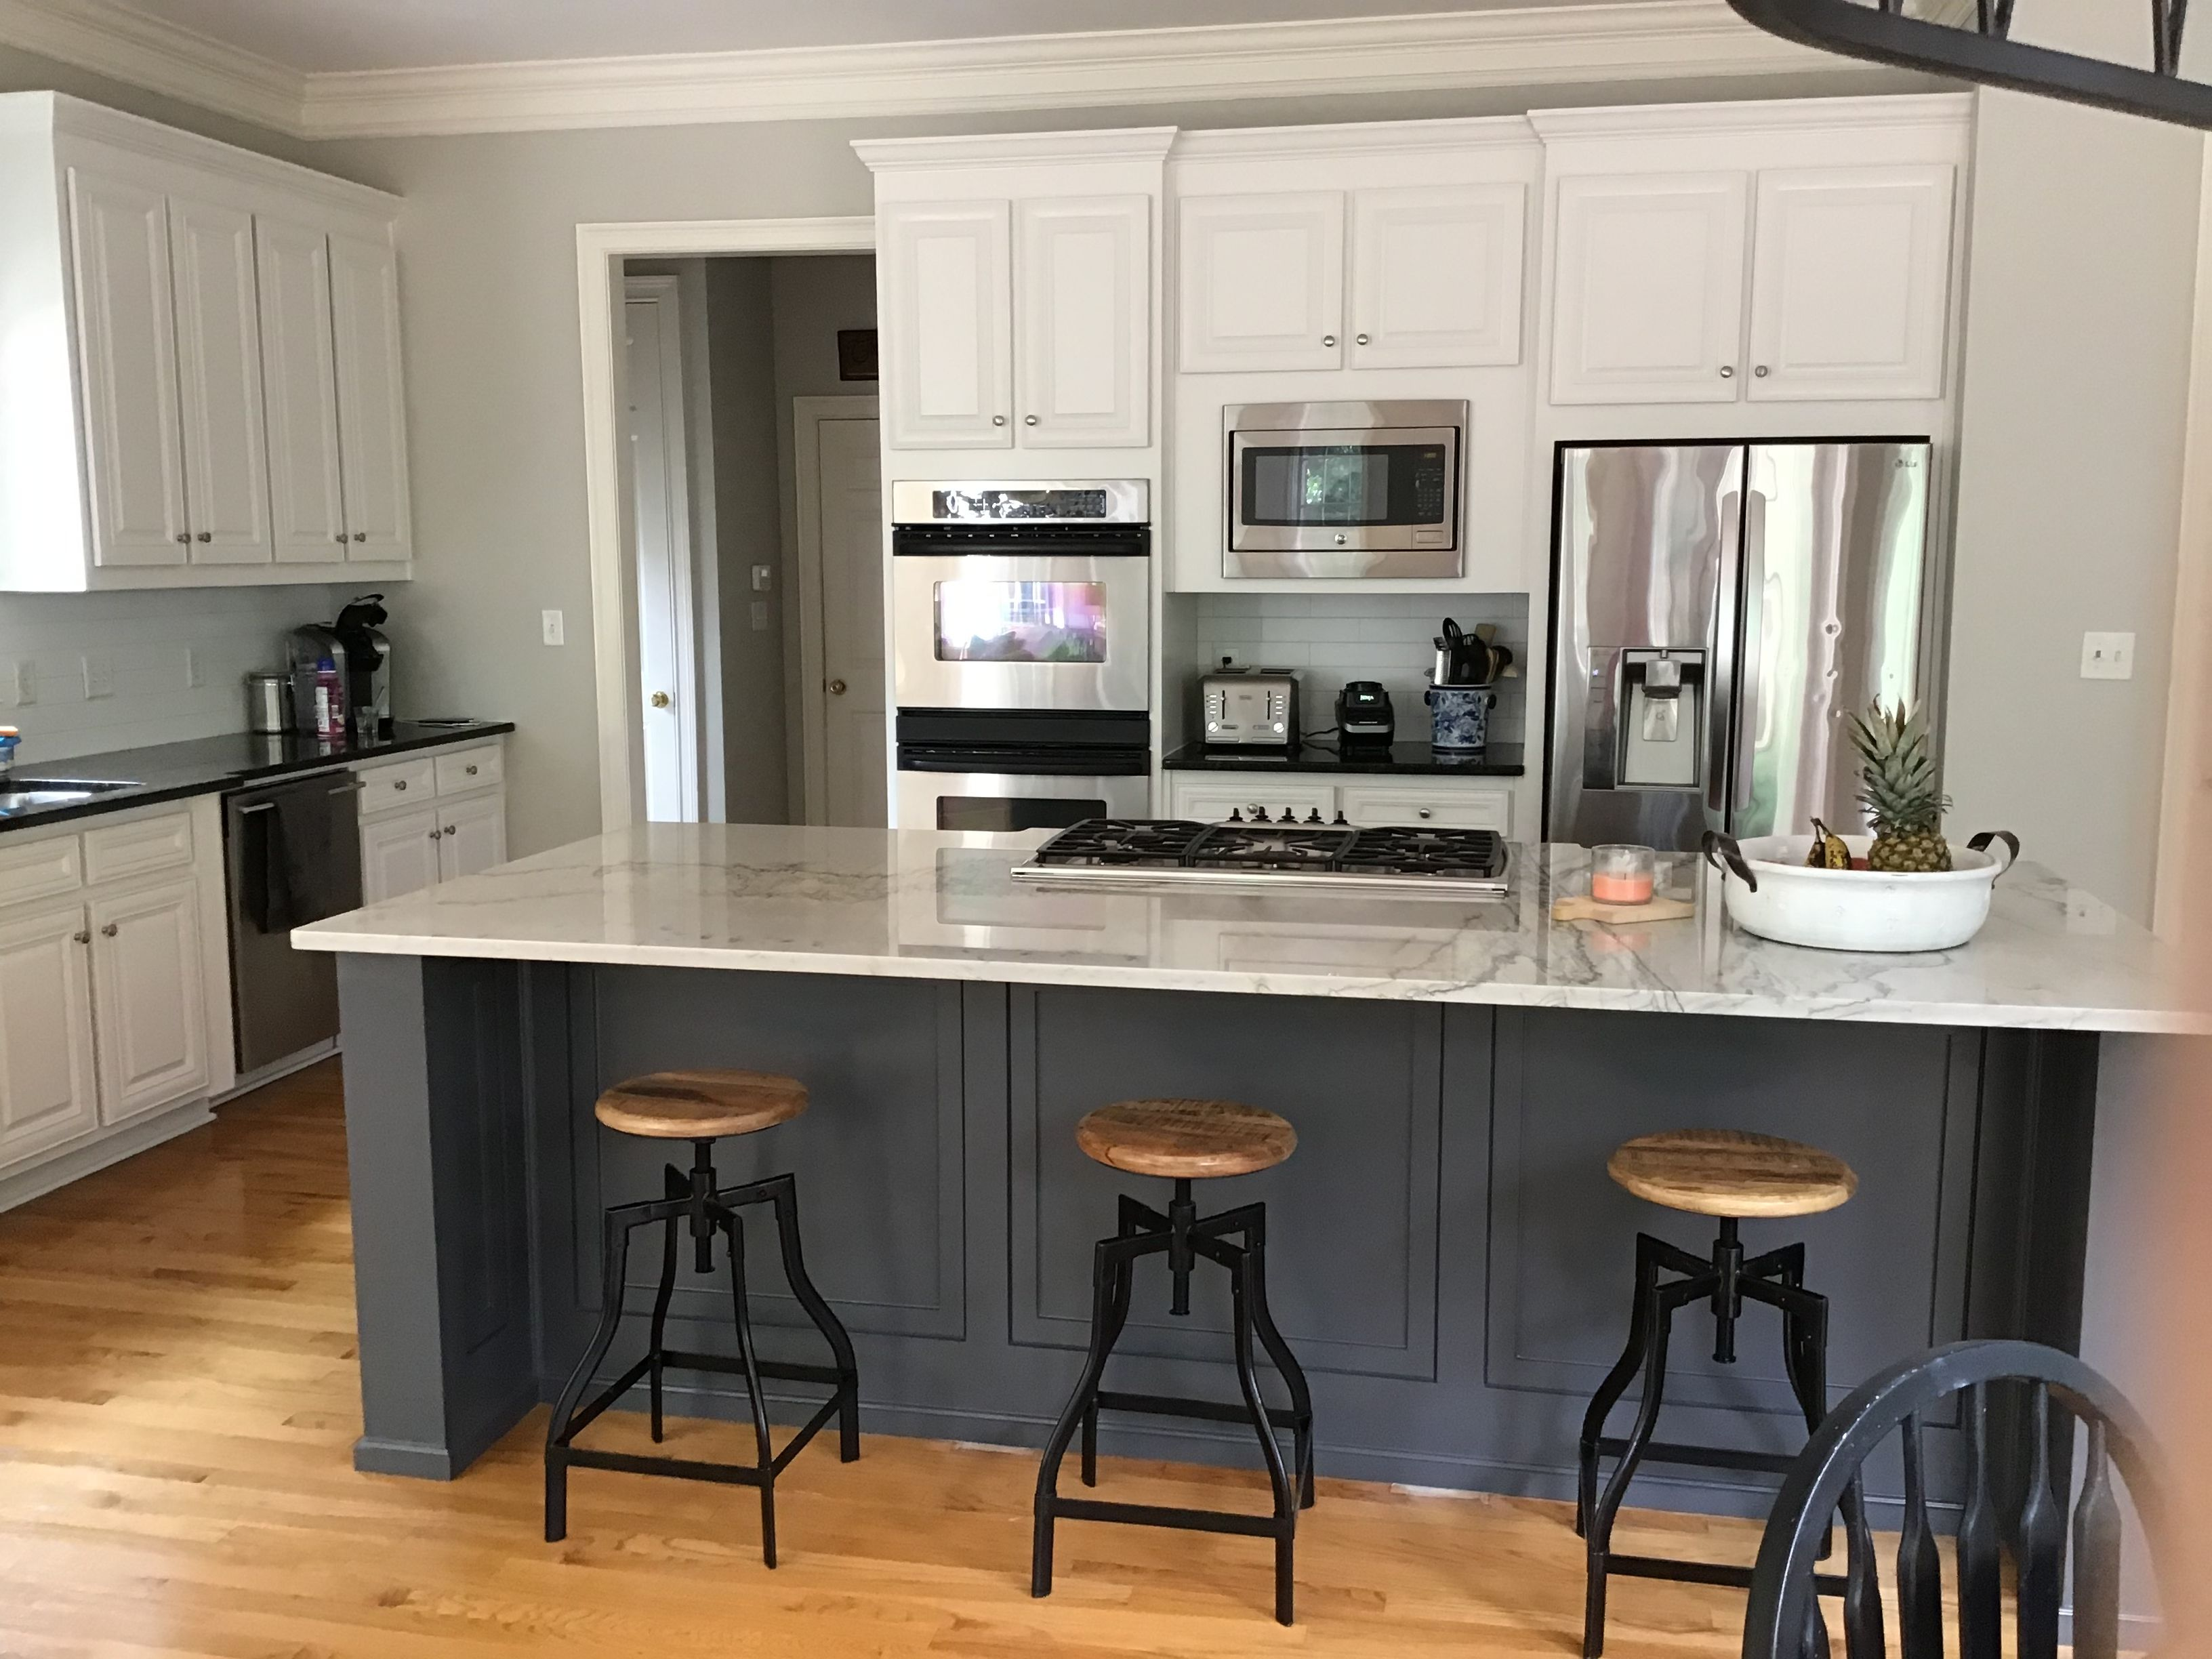 Kitchen Remodel In 2020 Grey Kitchen Walls Grey Kitchen Walls White Cabinets Painted Kitchen Cabinets Colors